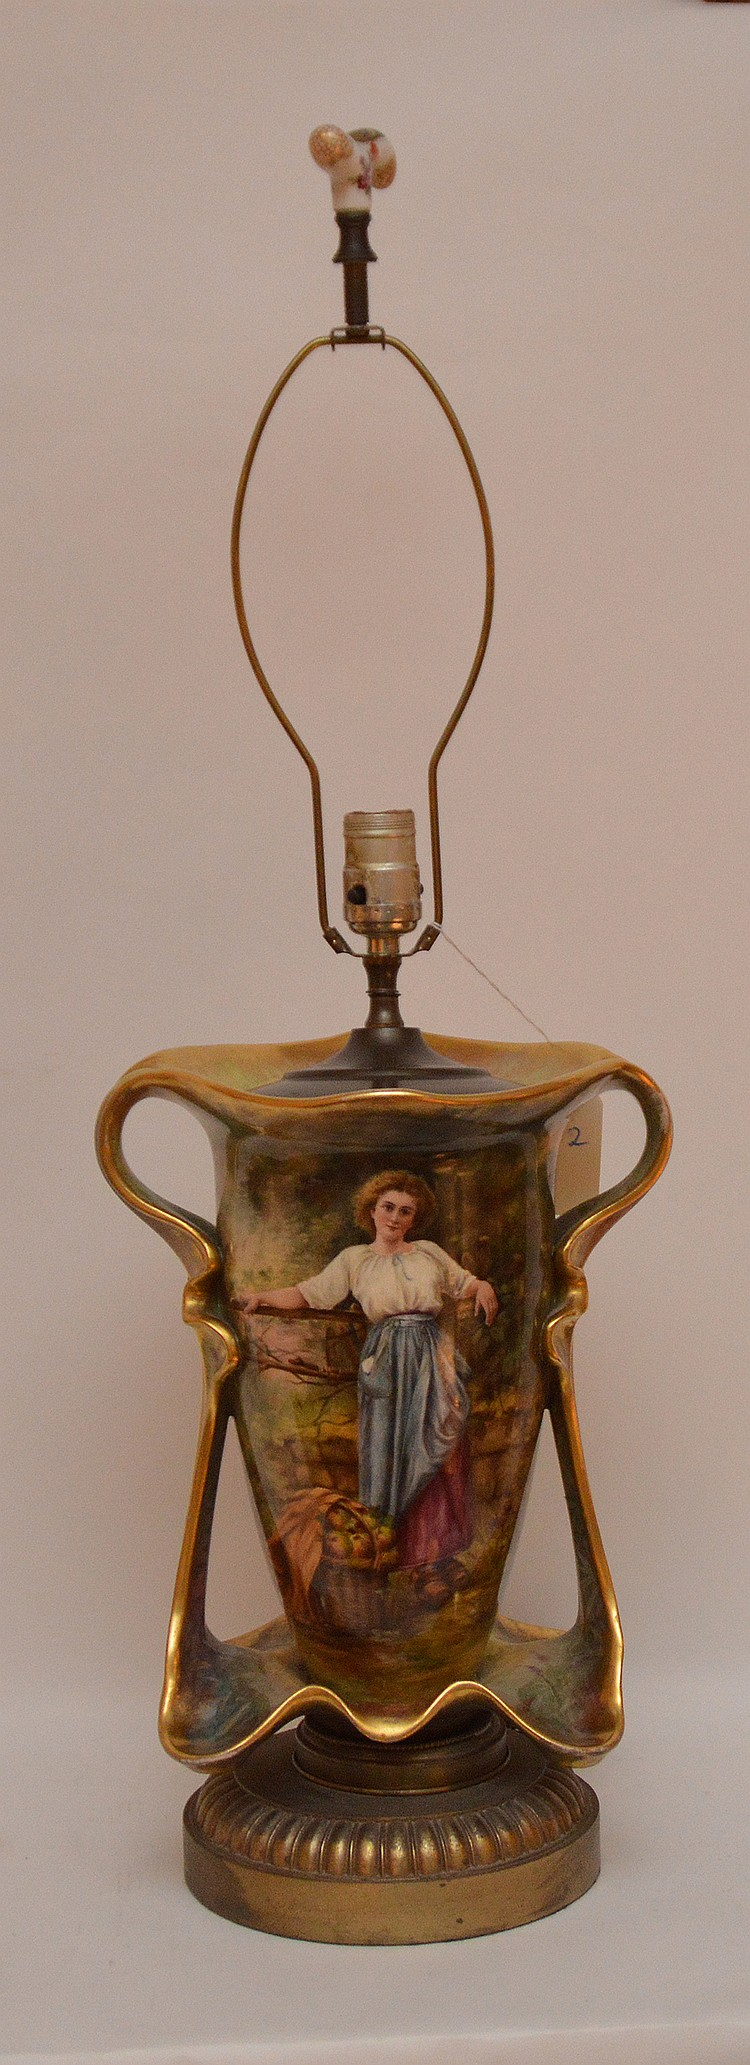 Old Paris porcelain lamp, 32